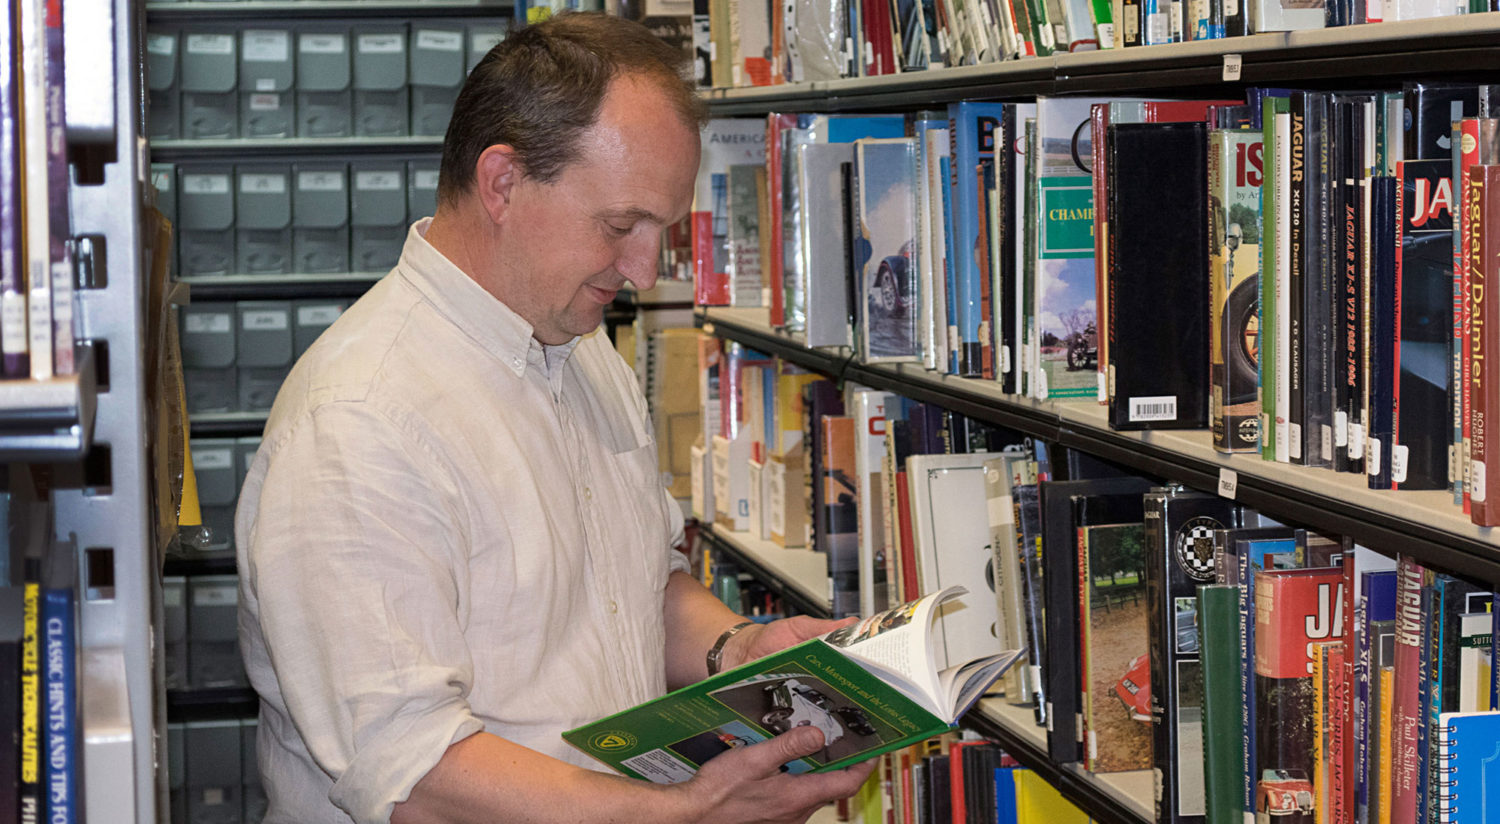 A man reading a book in the National Motor Museum library